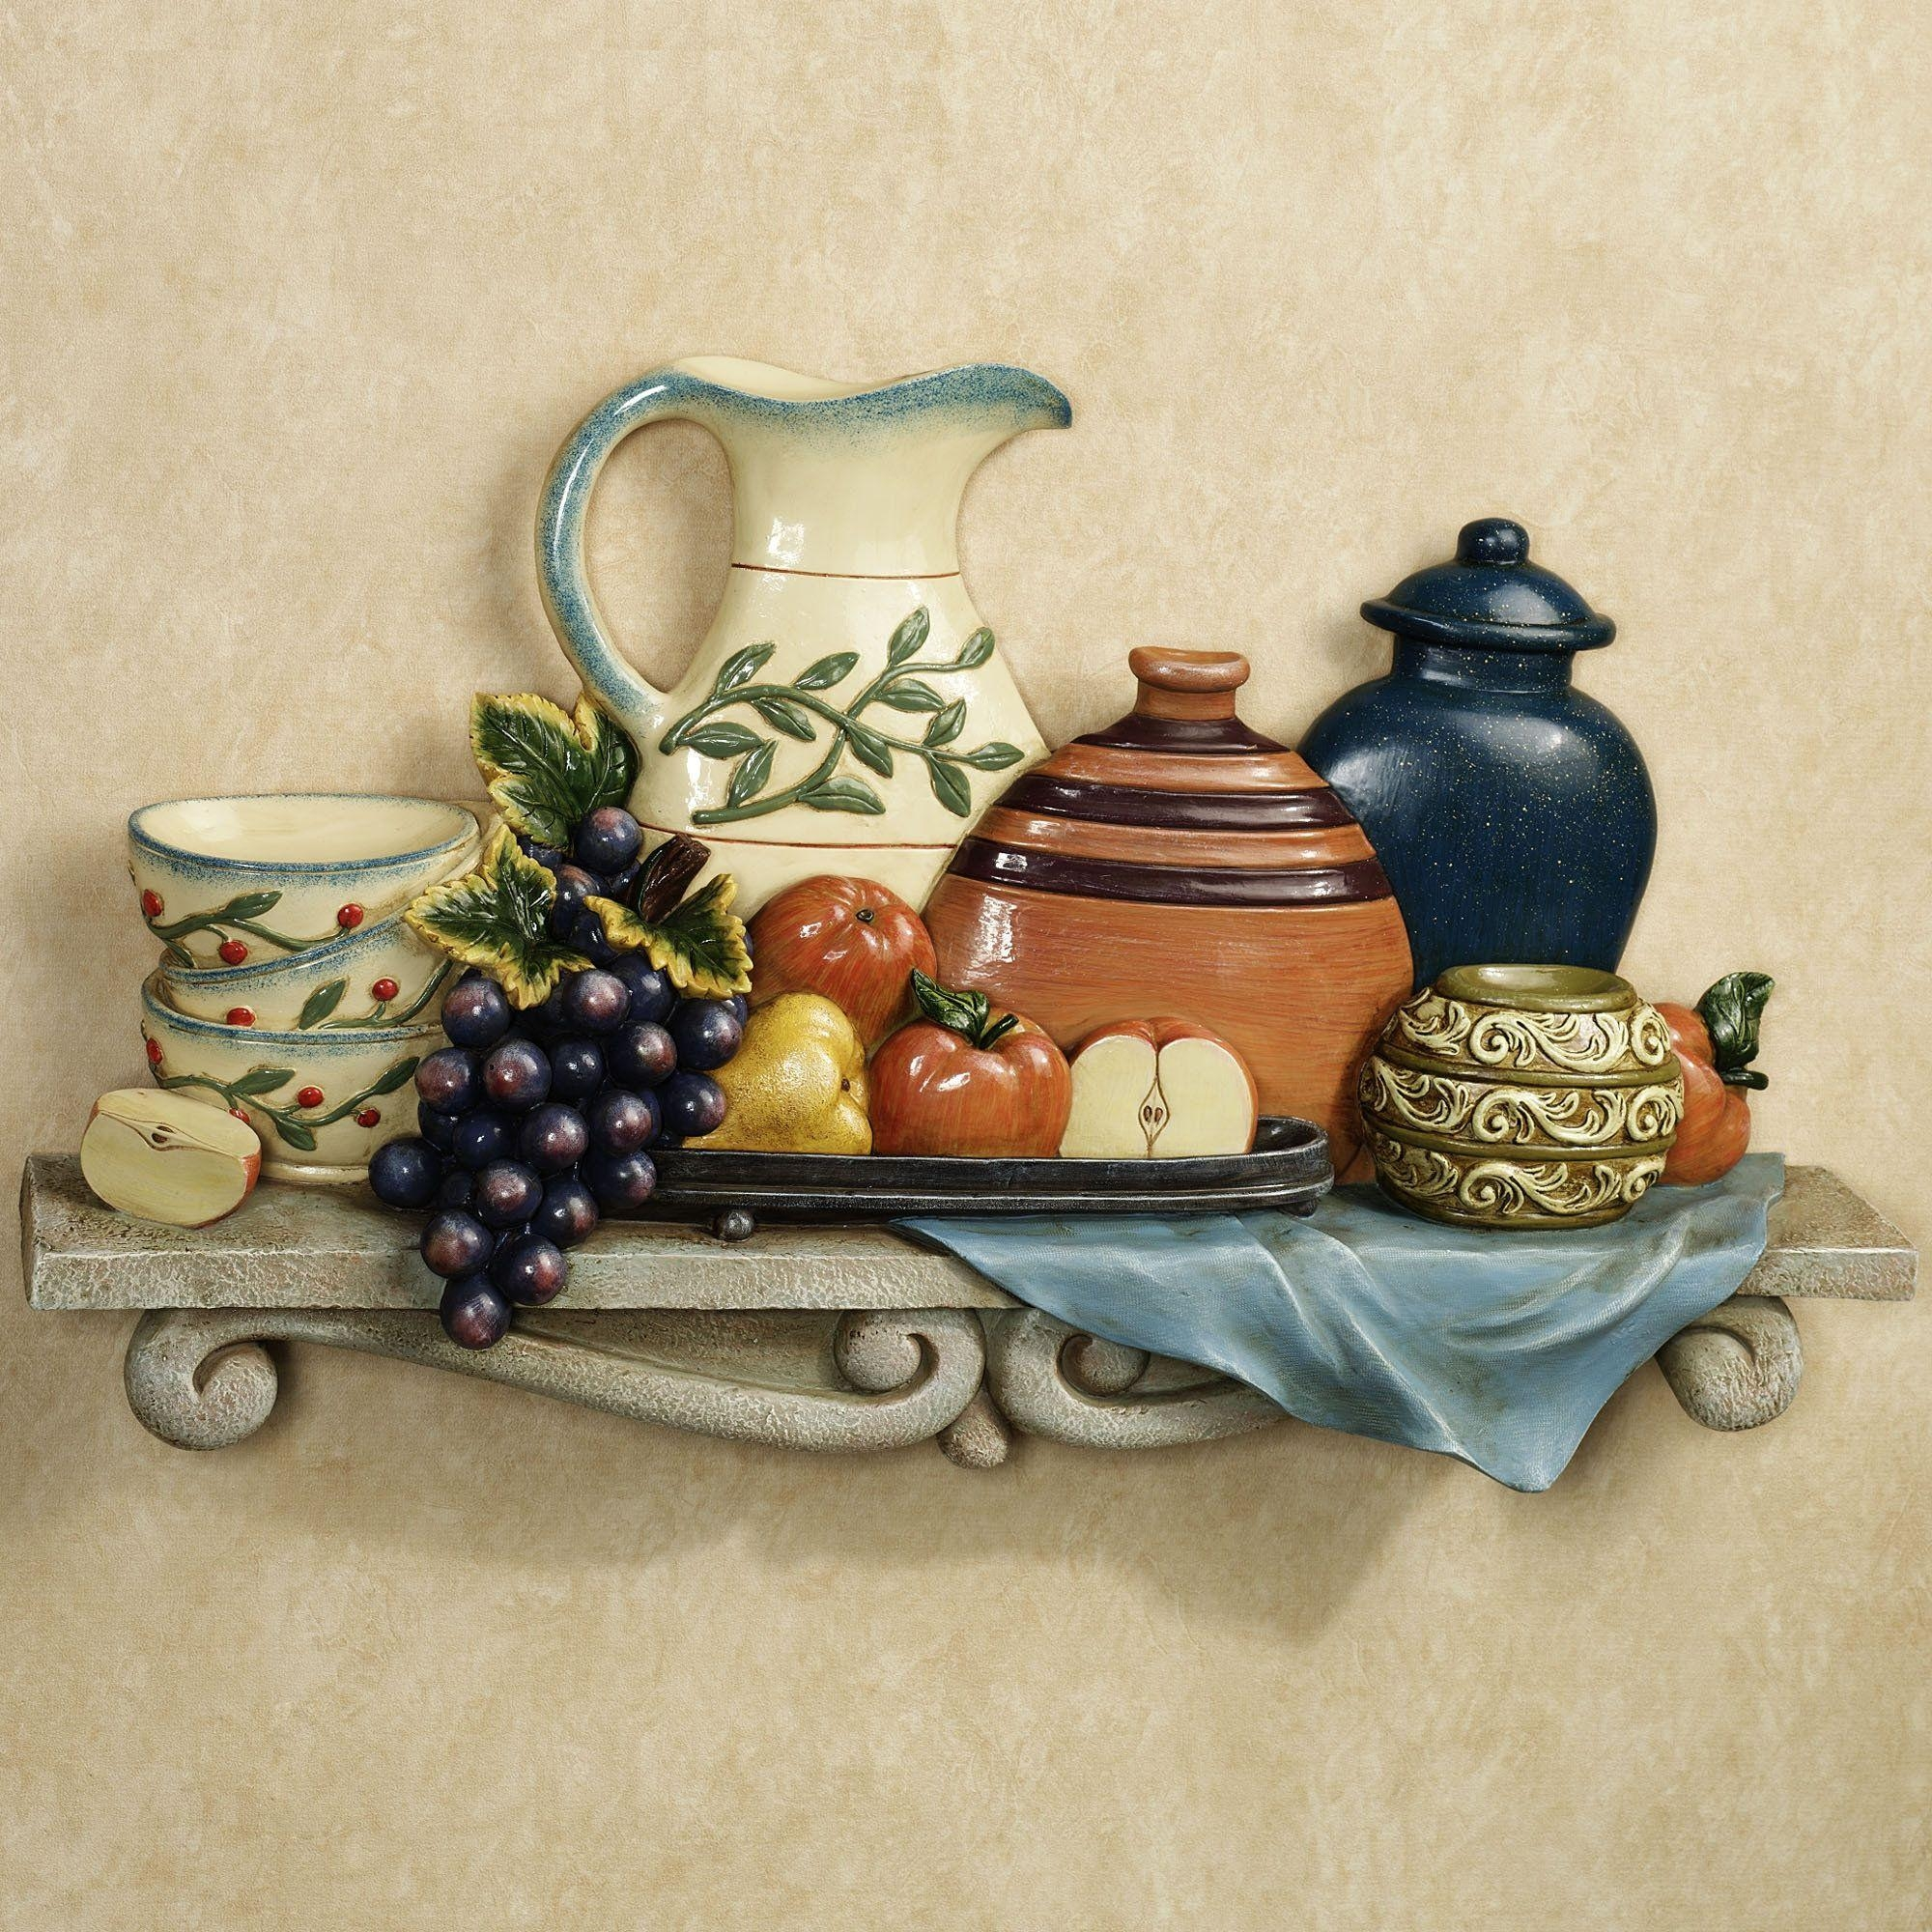 Tuscan Kitchen Wall Decor With Shelf – The Simple Ways For With Regard To Italian Wall Art For Kitchen (View 5 of 20)